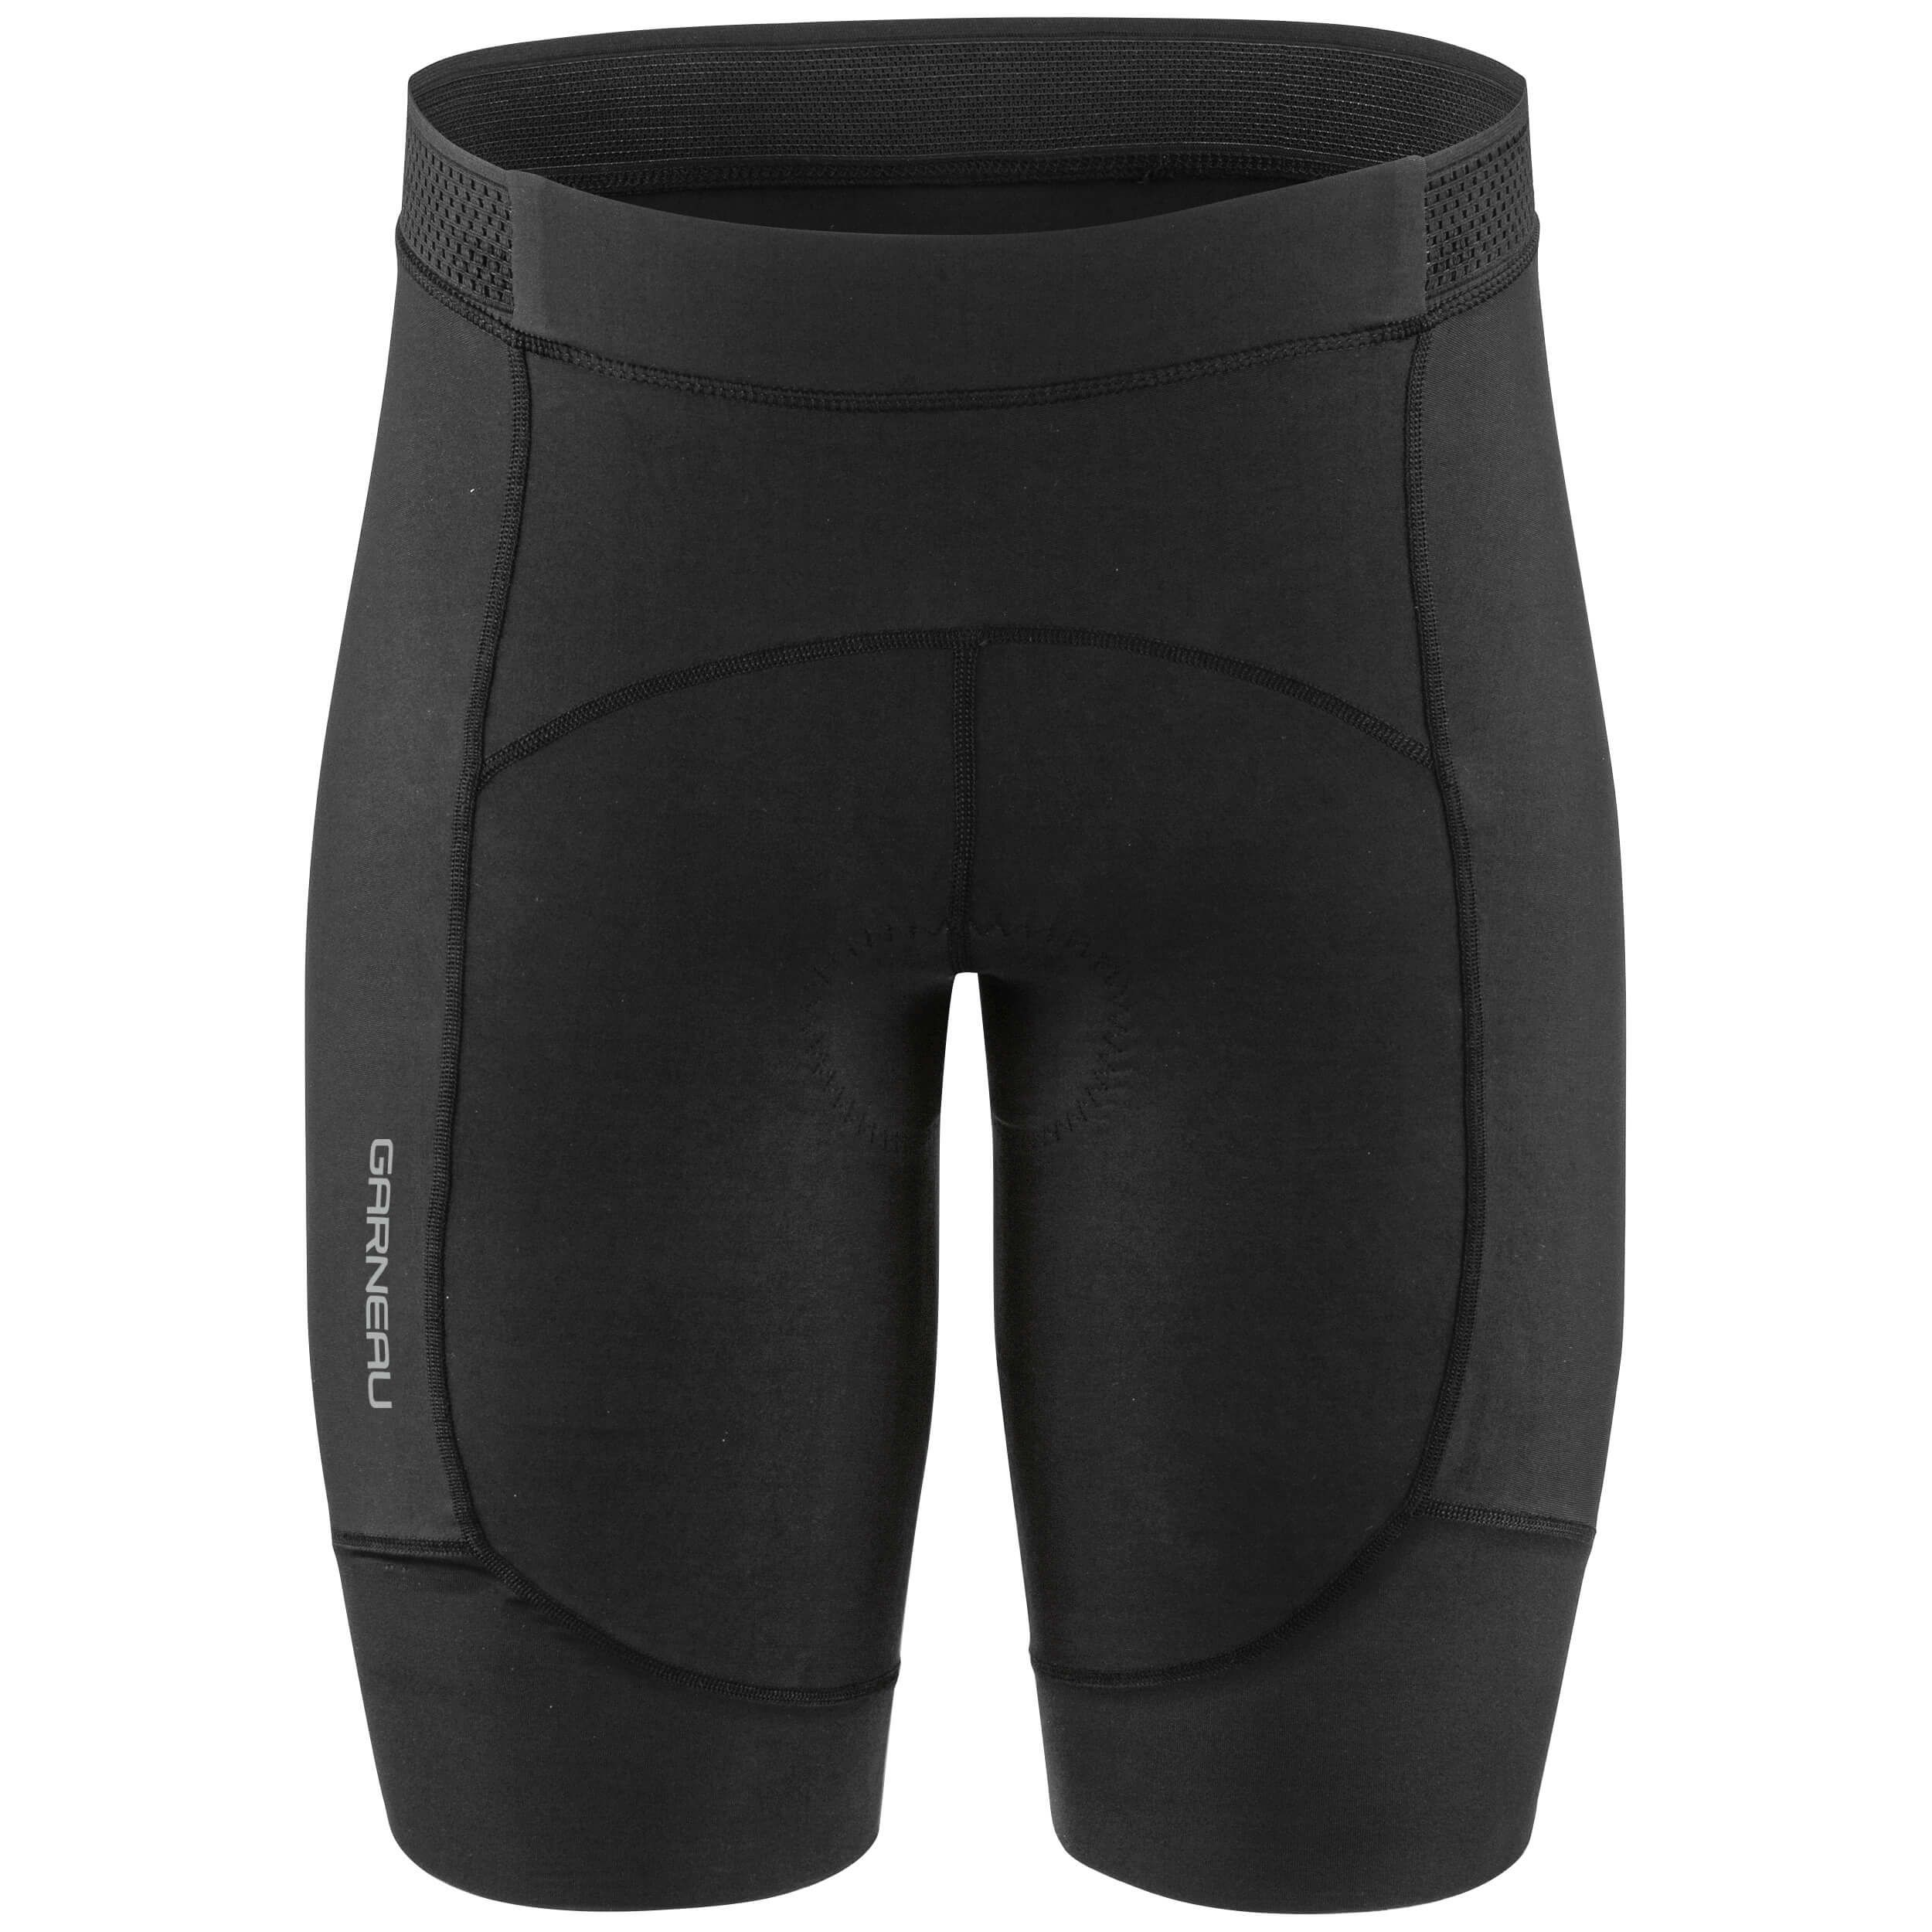 Cycling Clothing Neo Power Motion Cycling Shorts